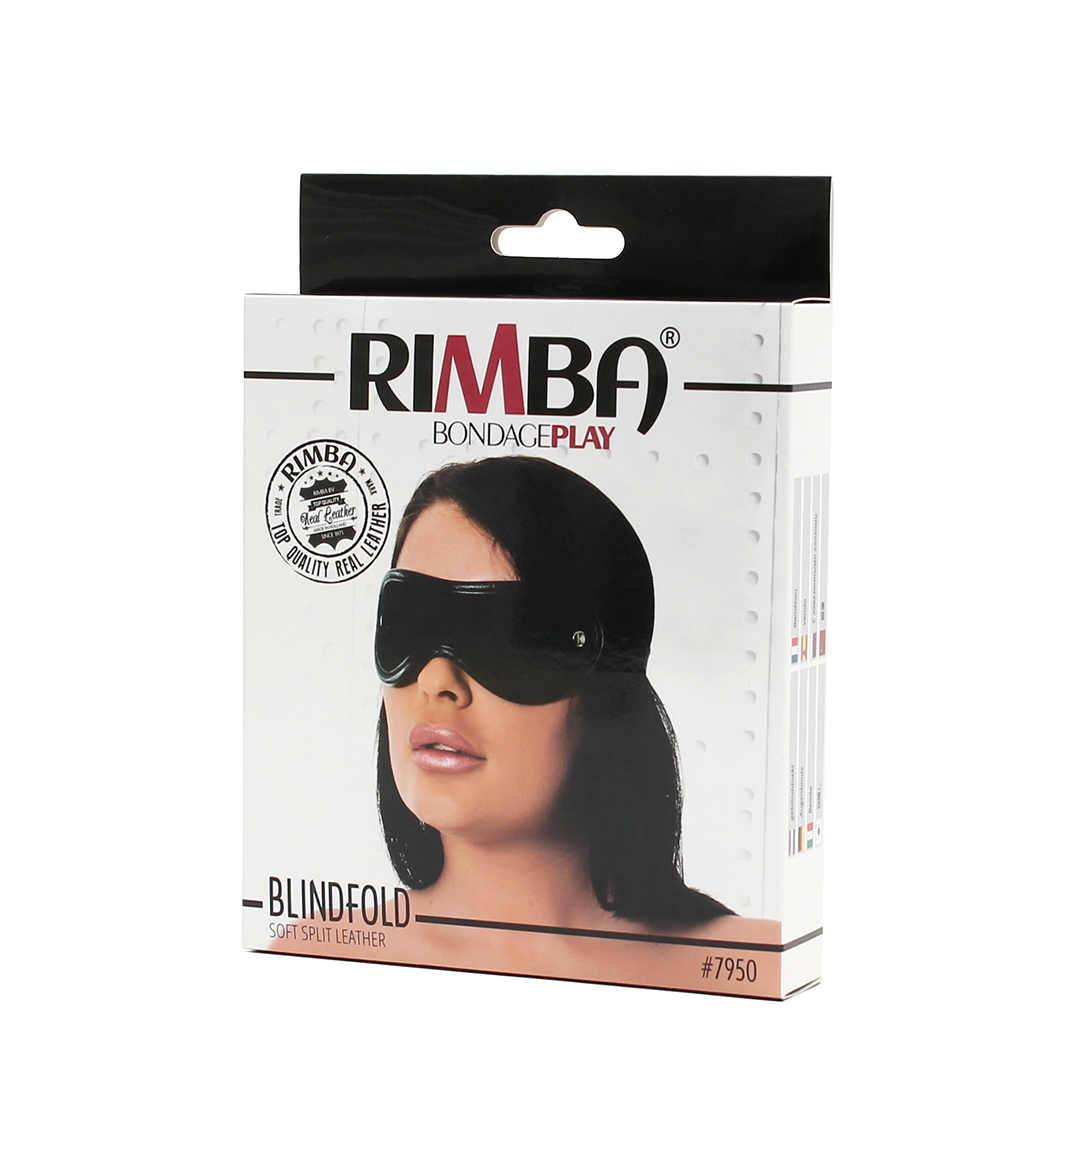 Soft Split Leather Blindfold – svart - Unisex øyebind - Rimba